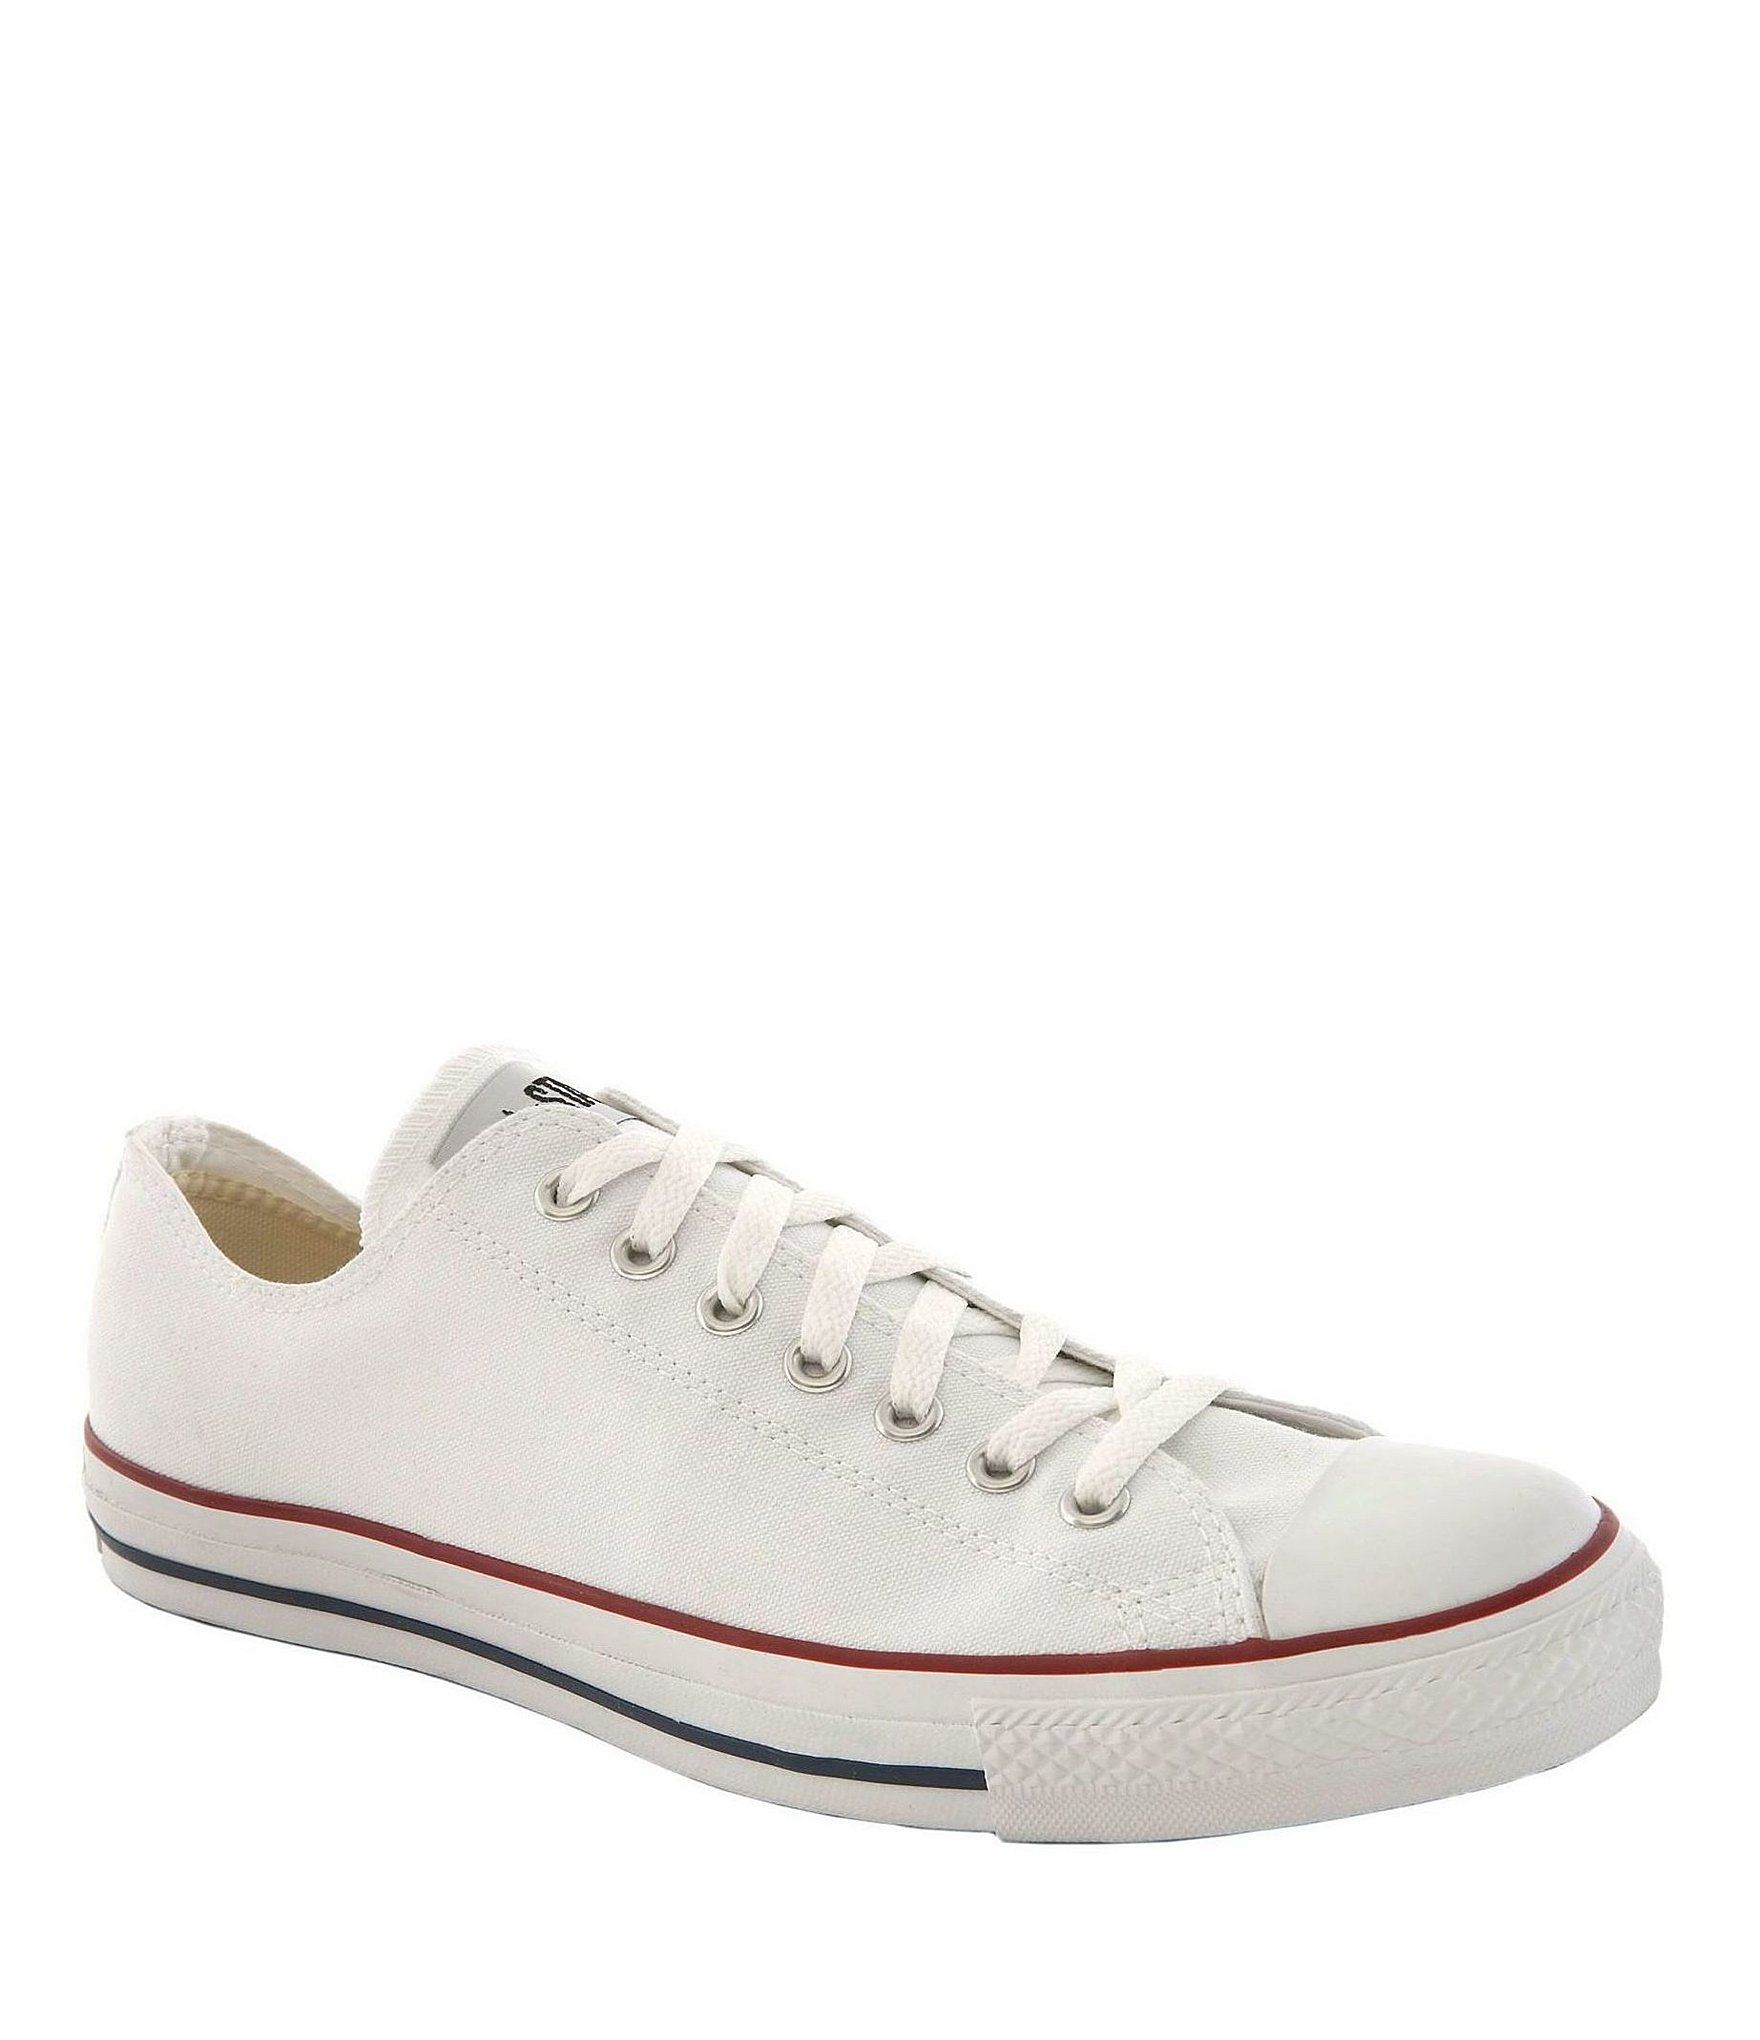 Converse Women's Chuck Taylor All Star Speckled Ox Trainers